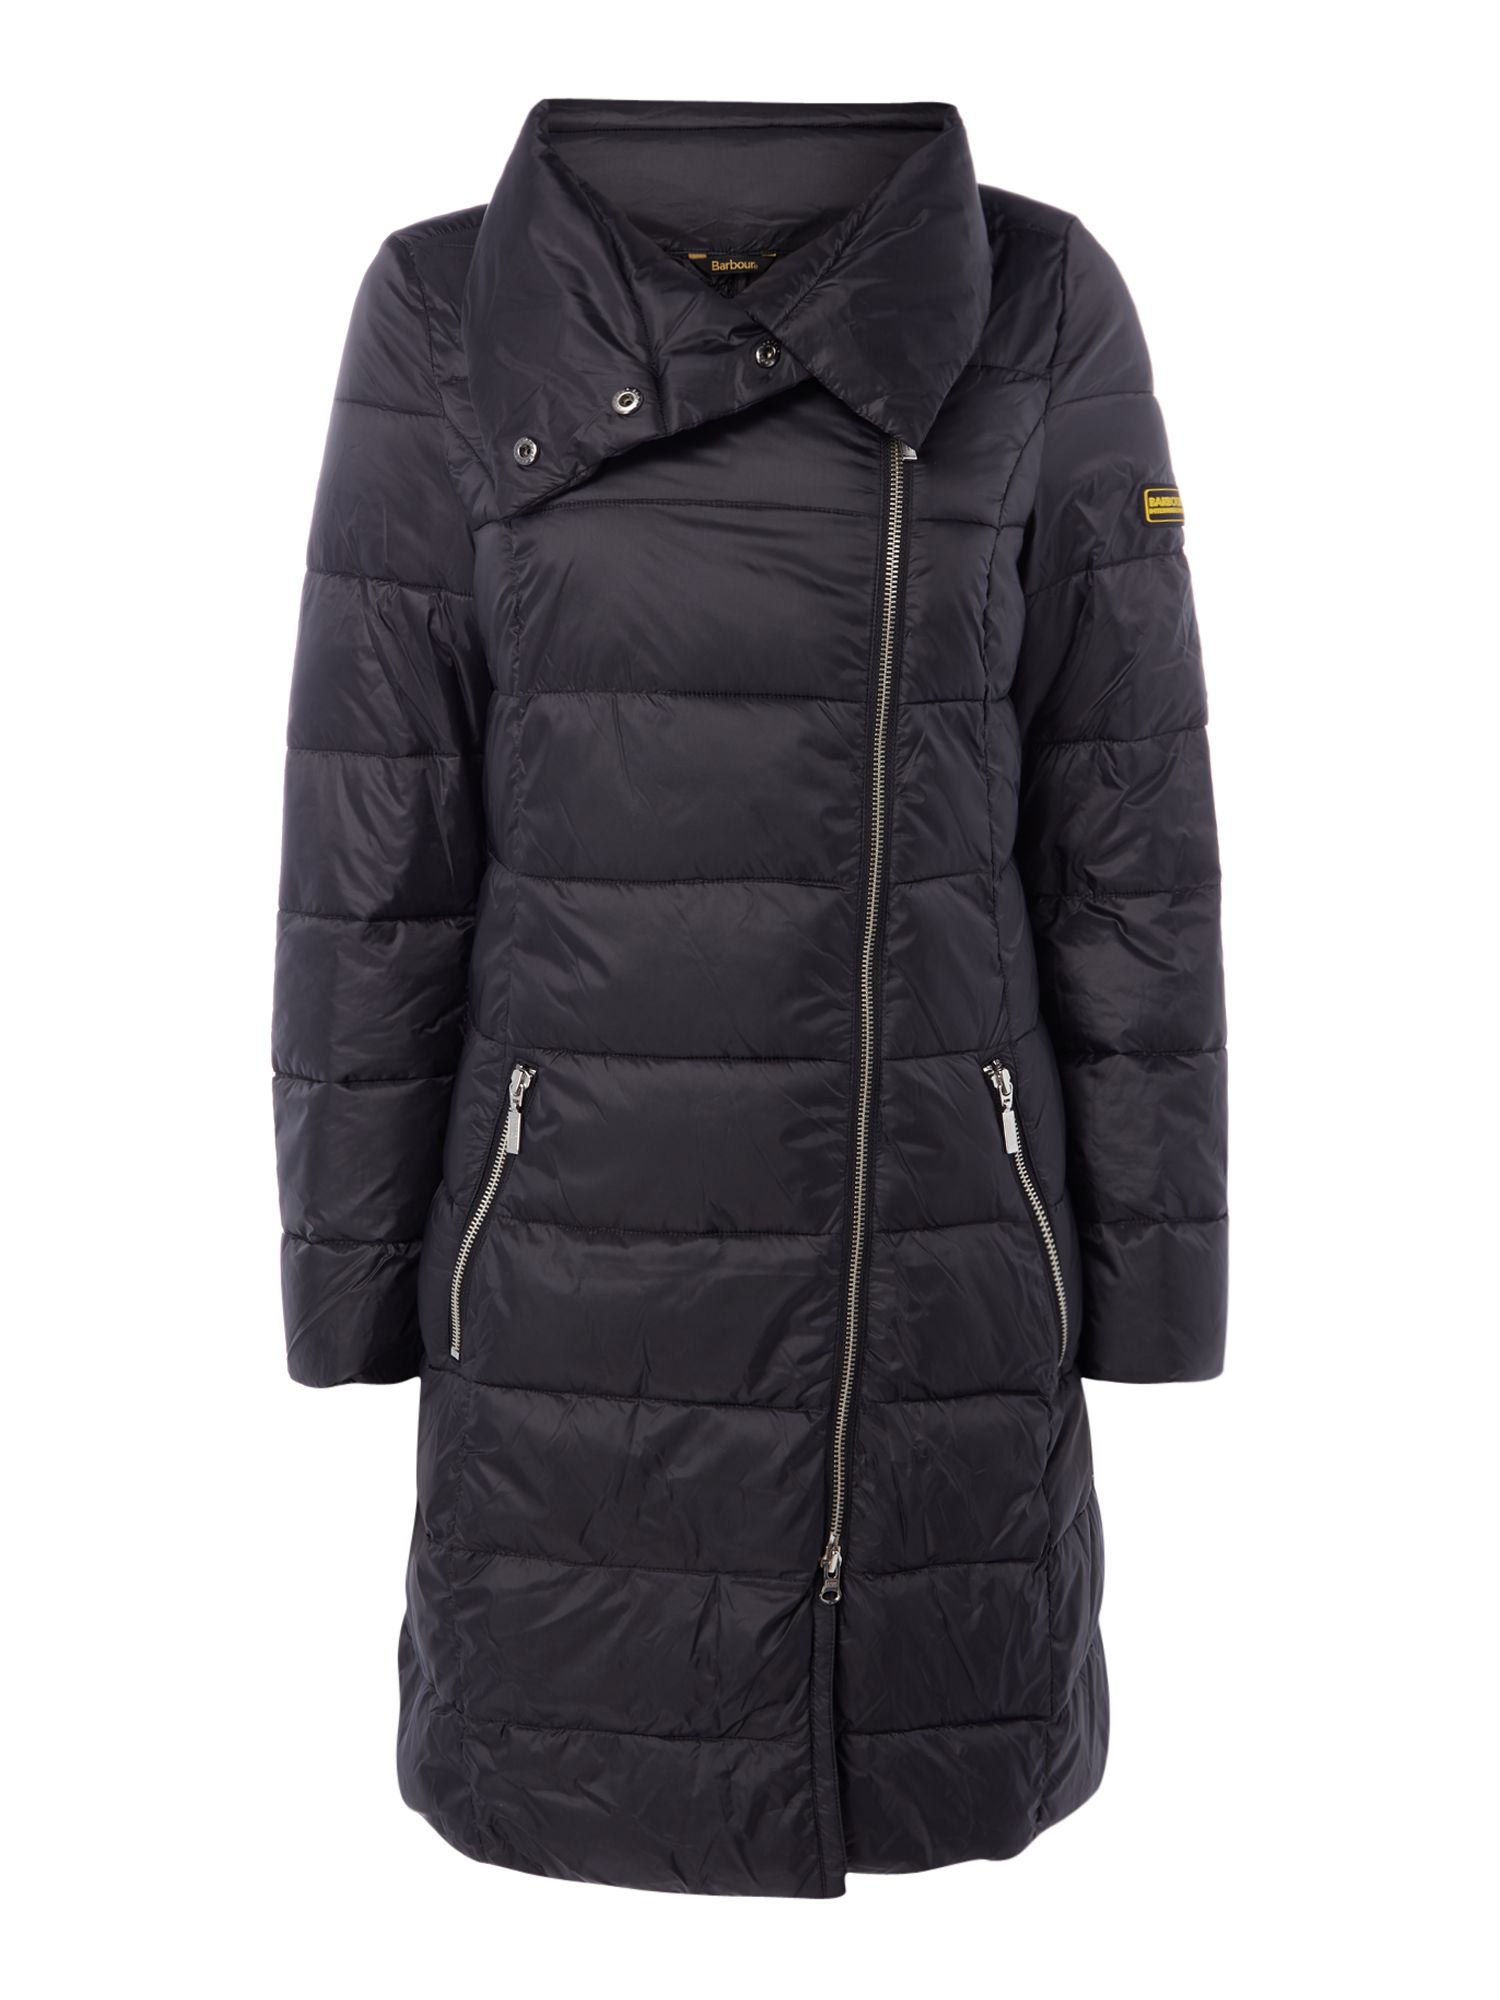 Barbour Mallory Long Quilt Coat, Black